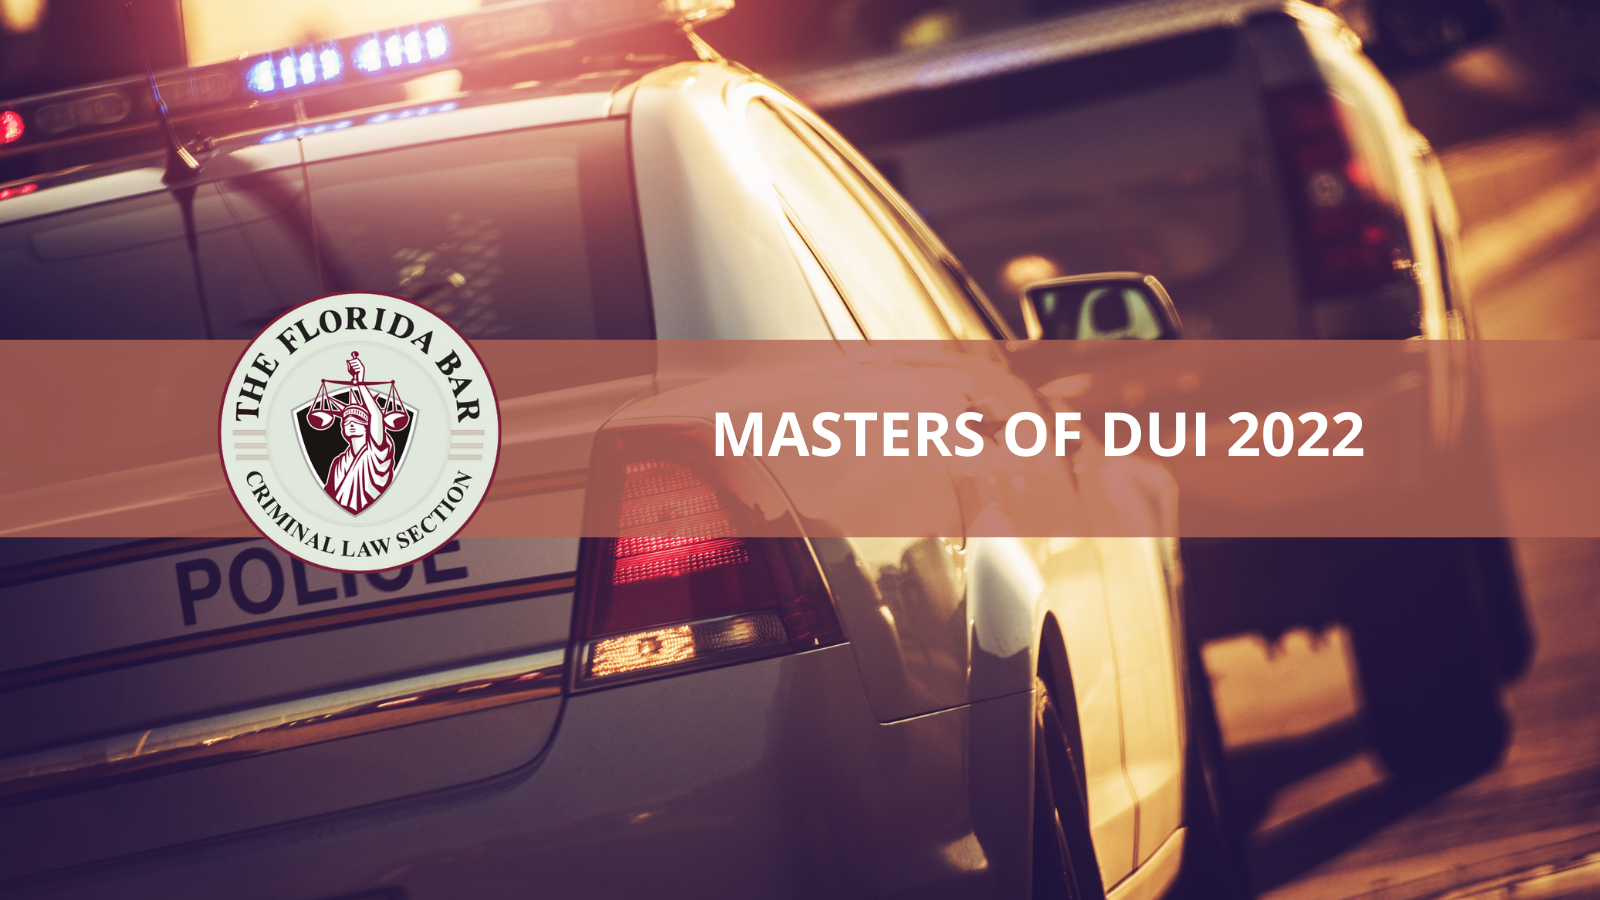 Masters of DUI 2022